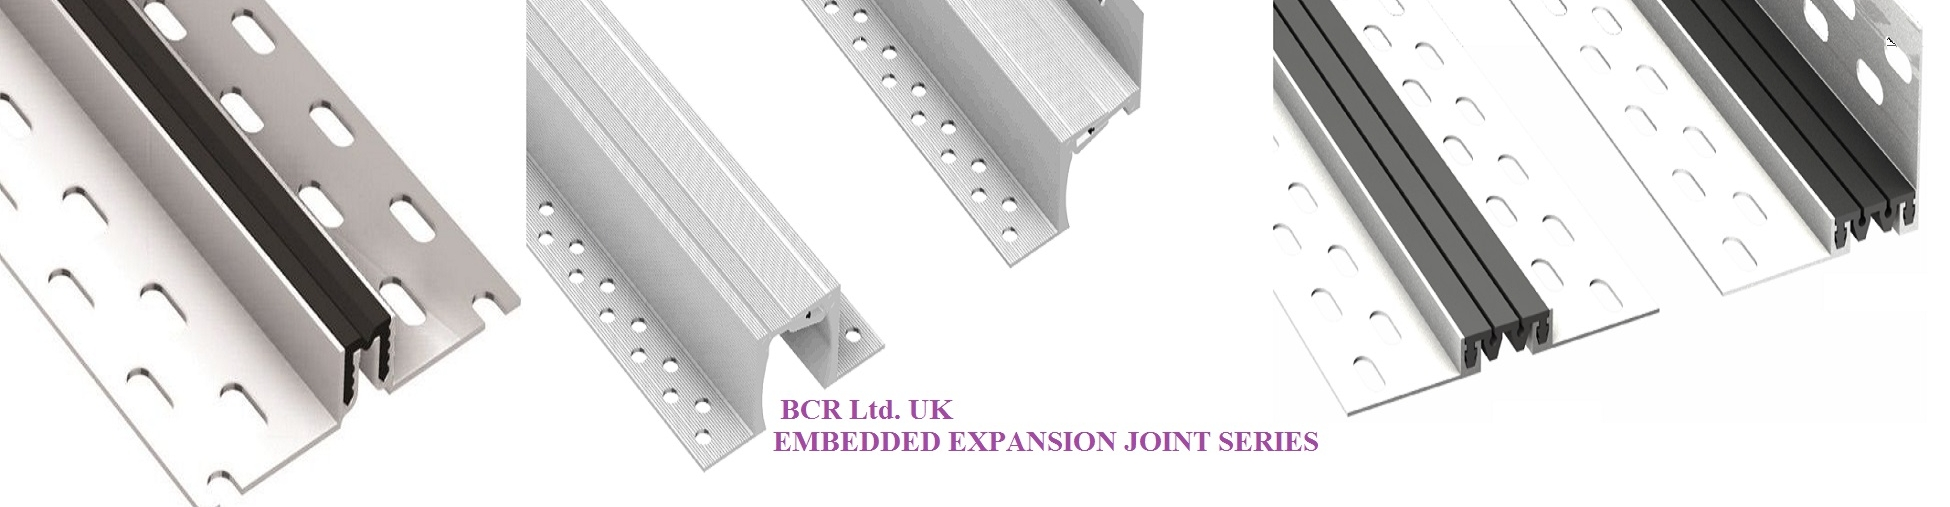 BCR EMBEDDED EXPANSION JOINT SERIES